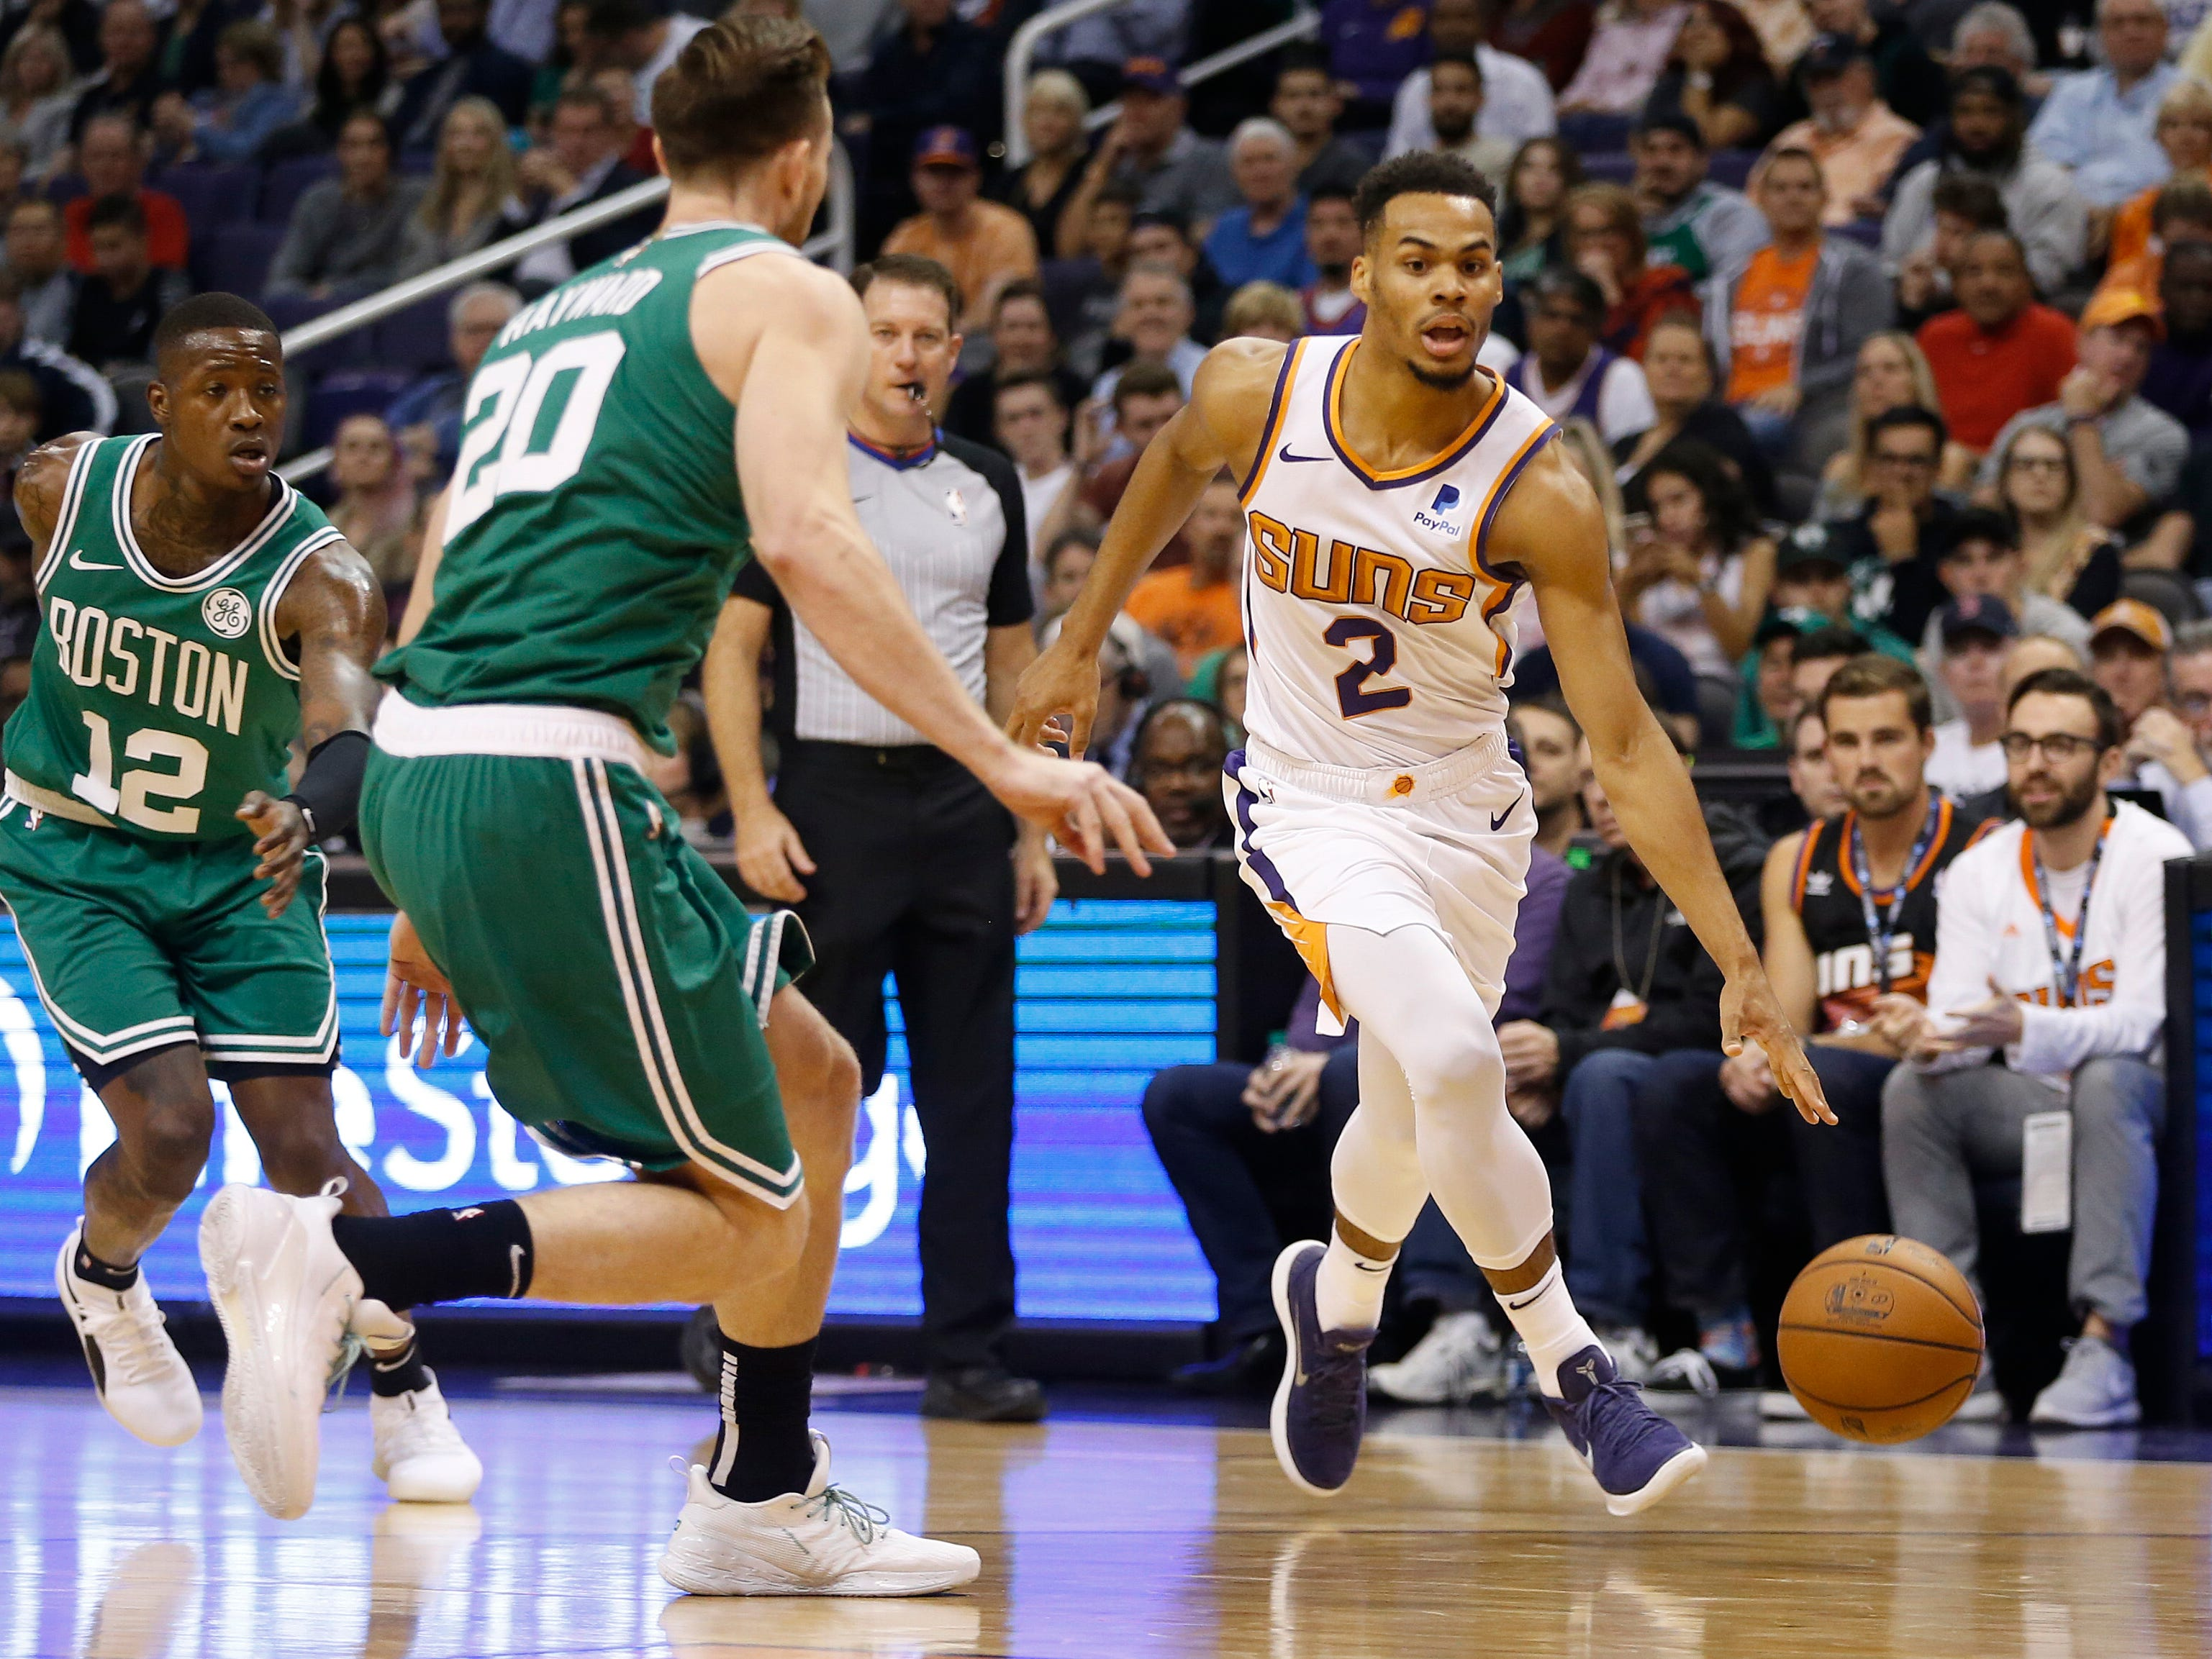 Suns' Elie Okobo (2) drives against the Celtics' Gordon Hayward (20) during the first half at Talking Stick Resort Arena in Phoenix, Ariz. on November 8, 2018.